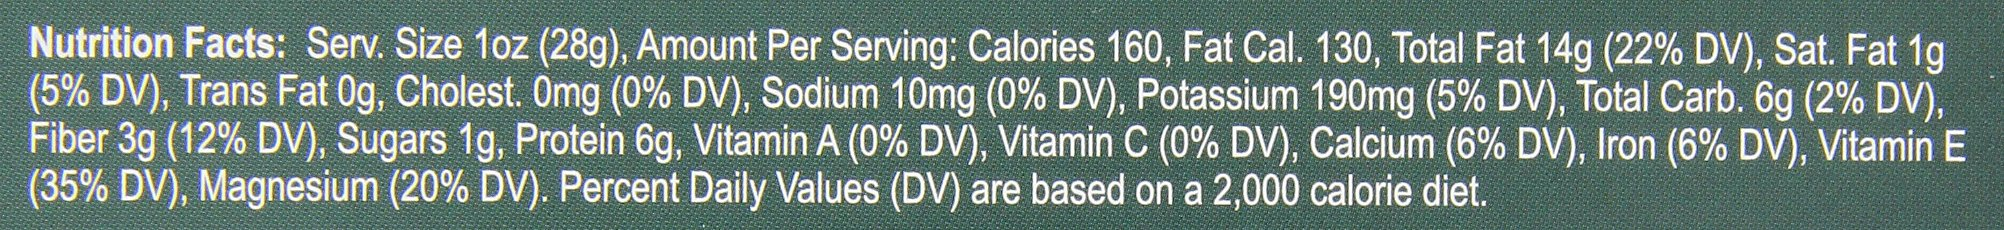 Madi K's Whole Natural Almonds, 1 Ounce Bag (Pack of 48) by Madi K's (Image #2)